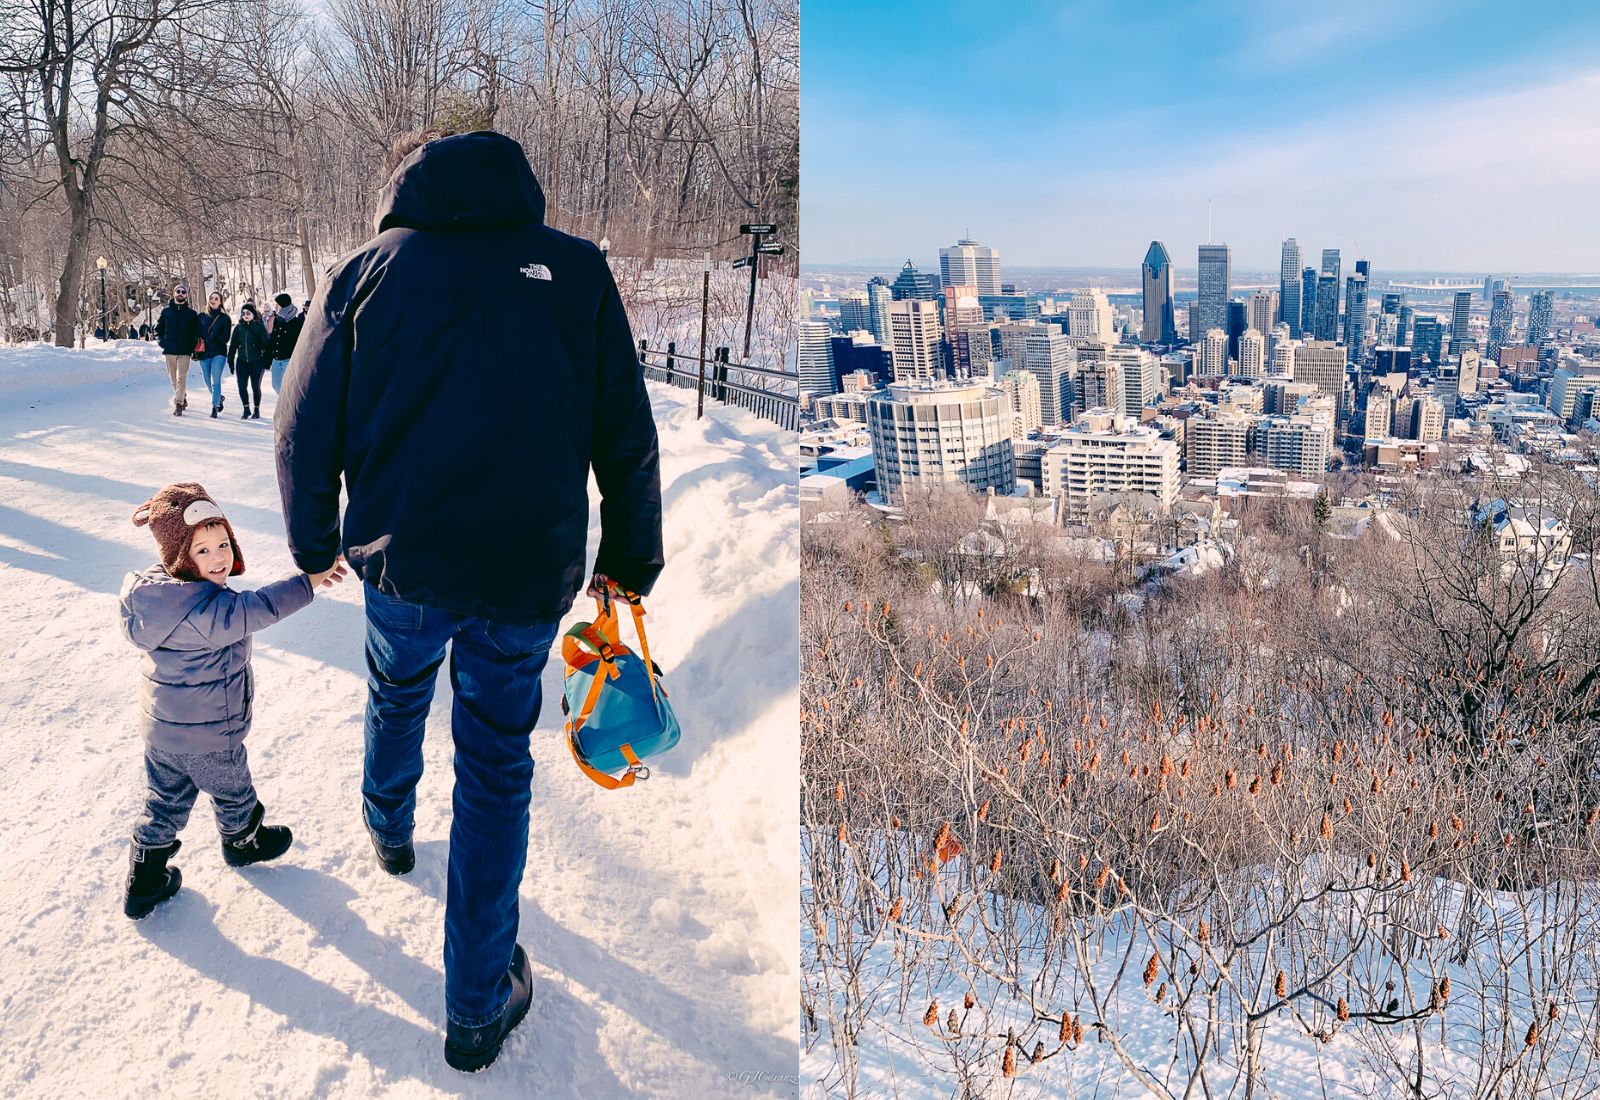 Mount Royal Outlook: Things To Do in Montreal, Canada